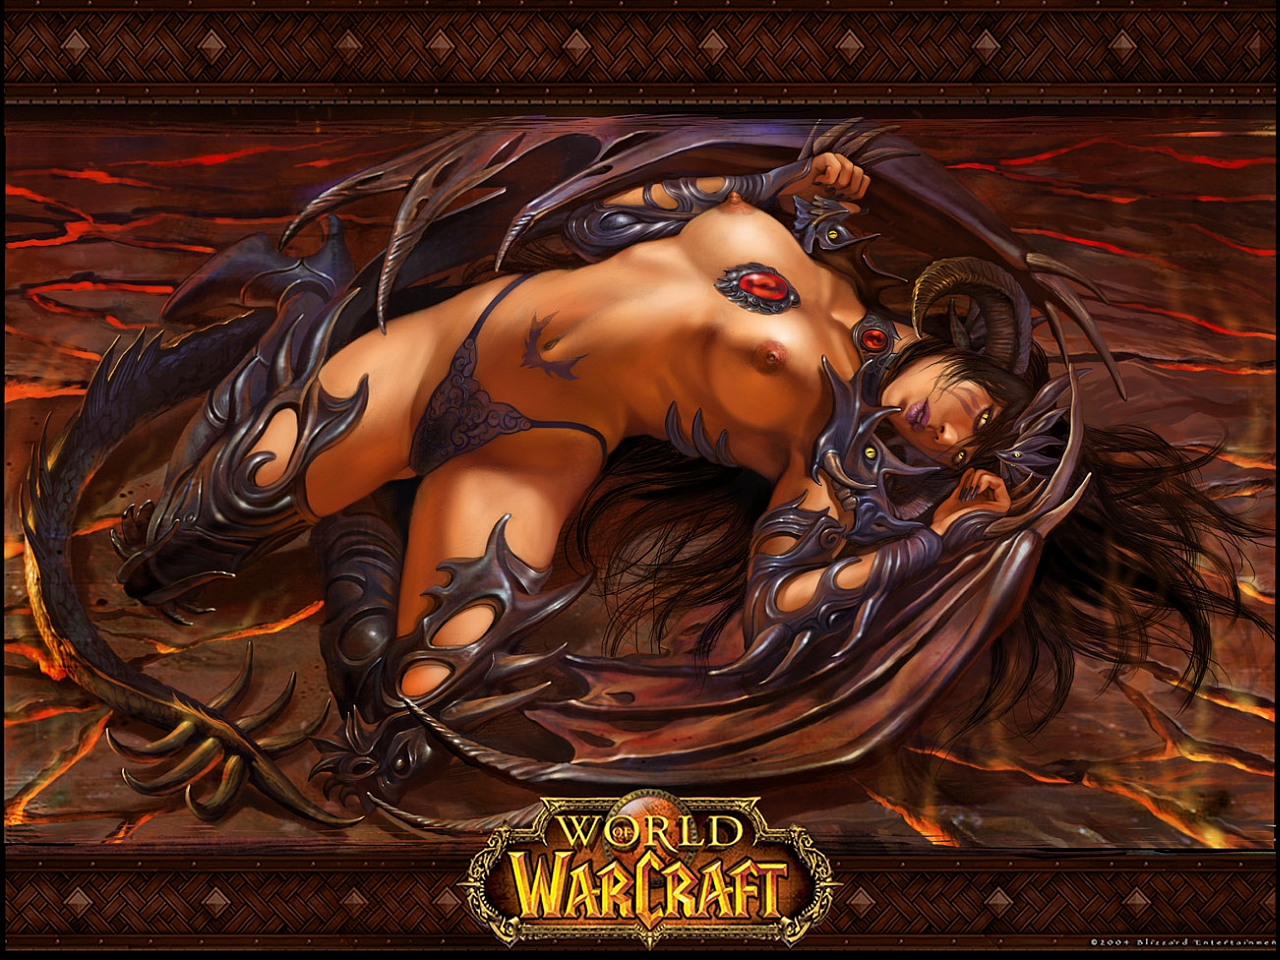 World Of Warcraft Porn Gallery Wallpapers Nude World Warcraft Demon: iluvtoons.com/world-of-warcraft-porn/43566.html